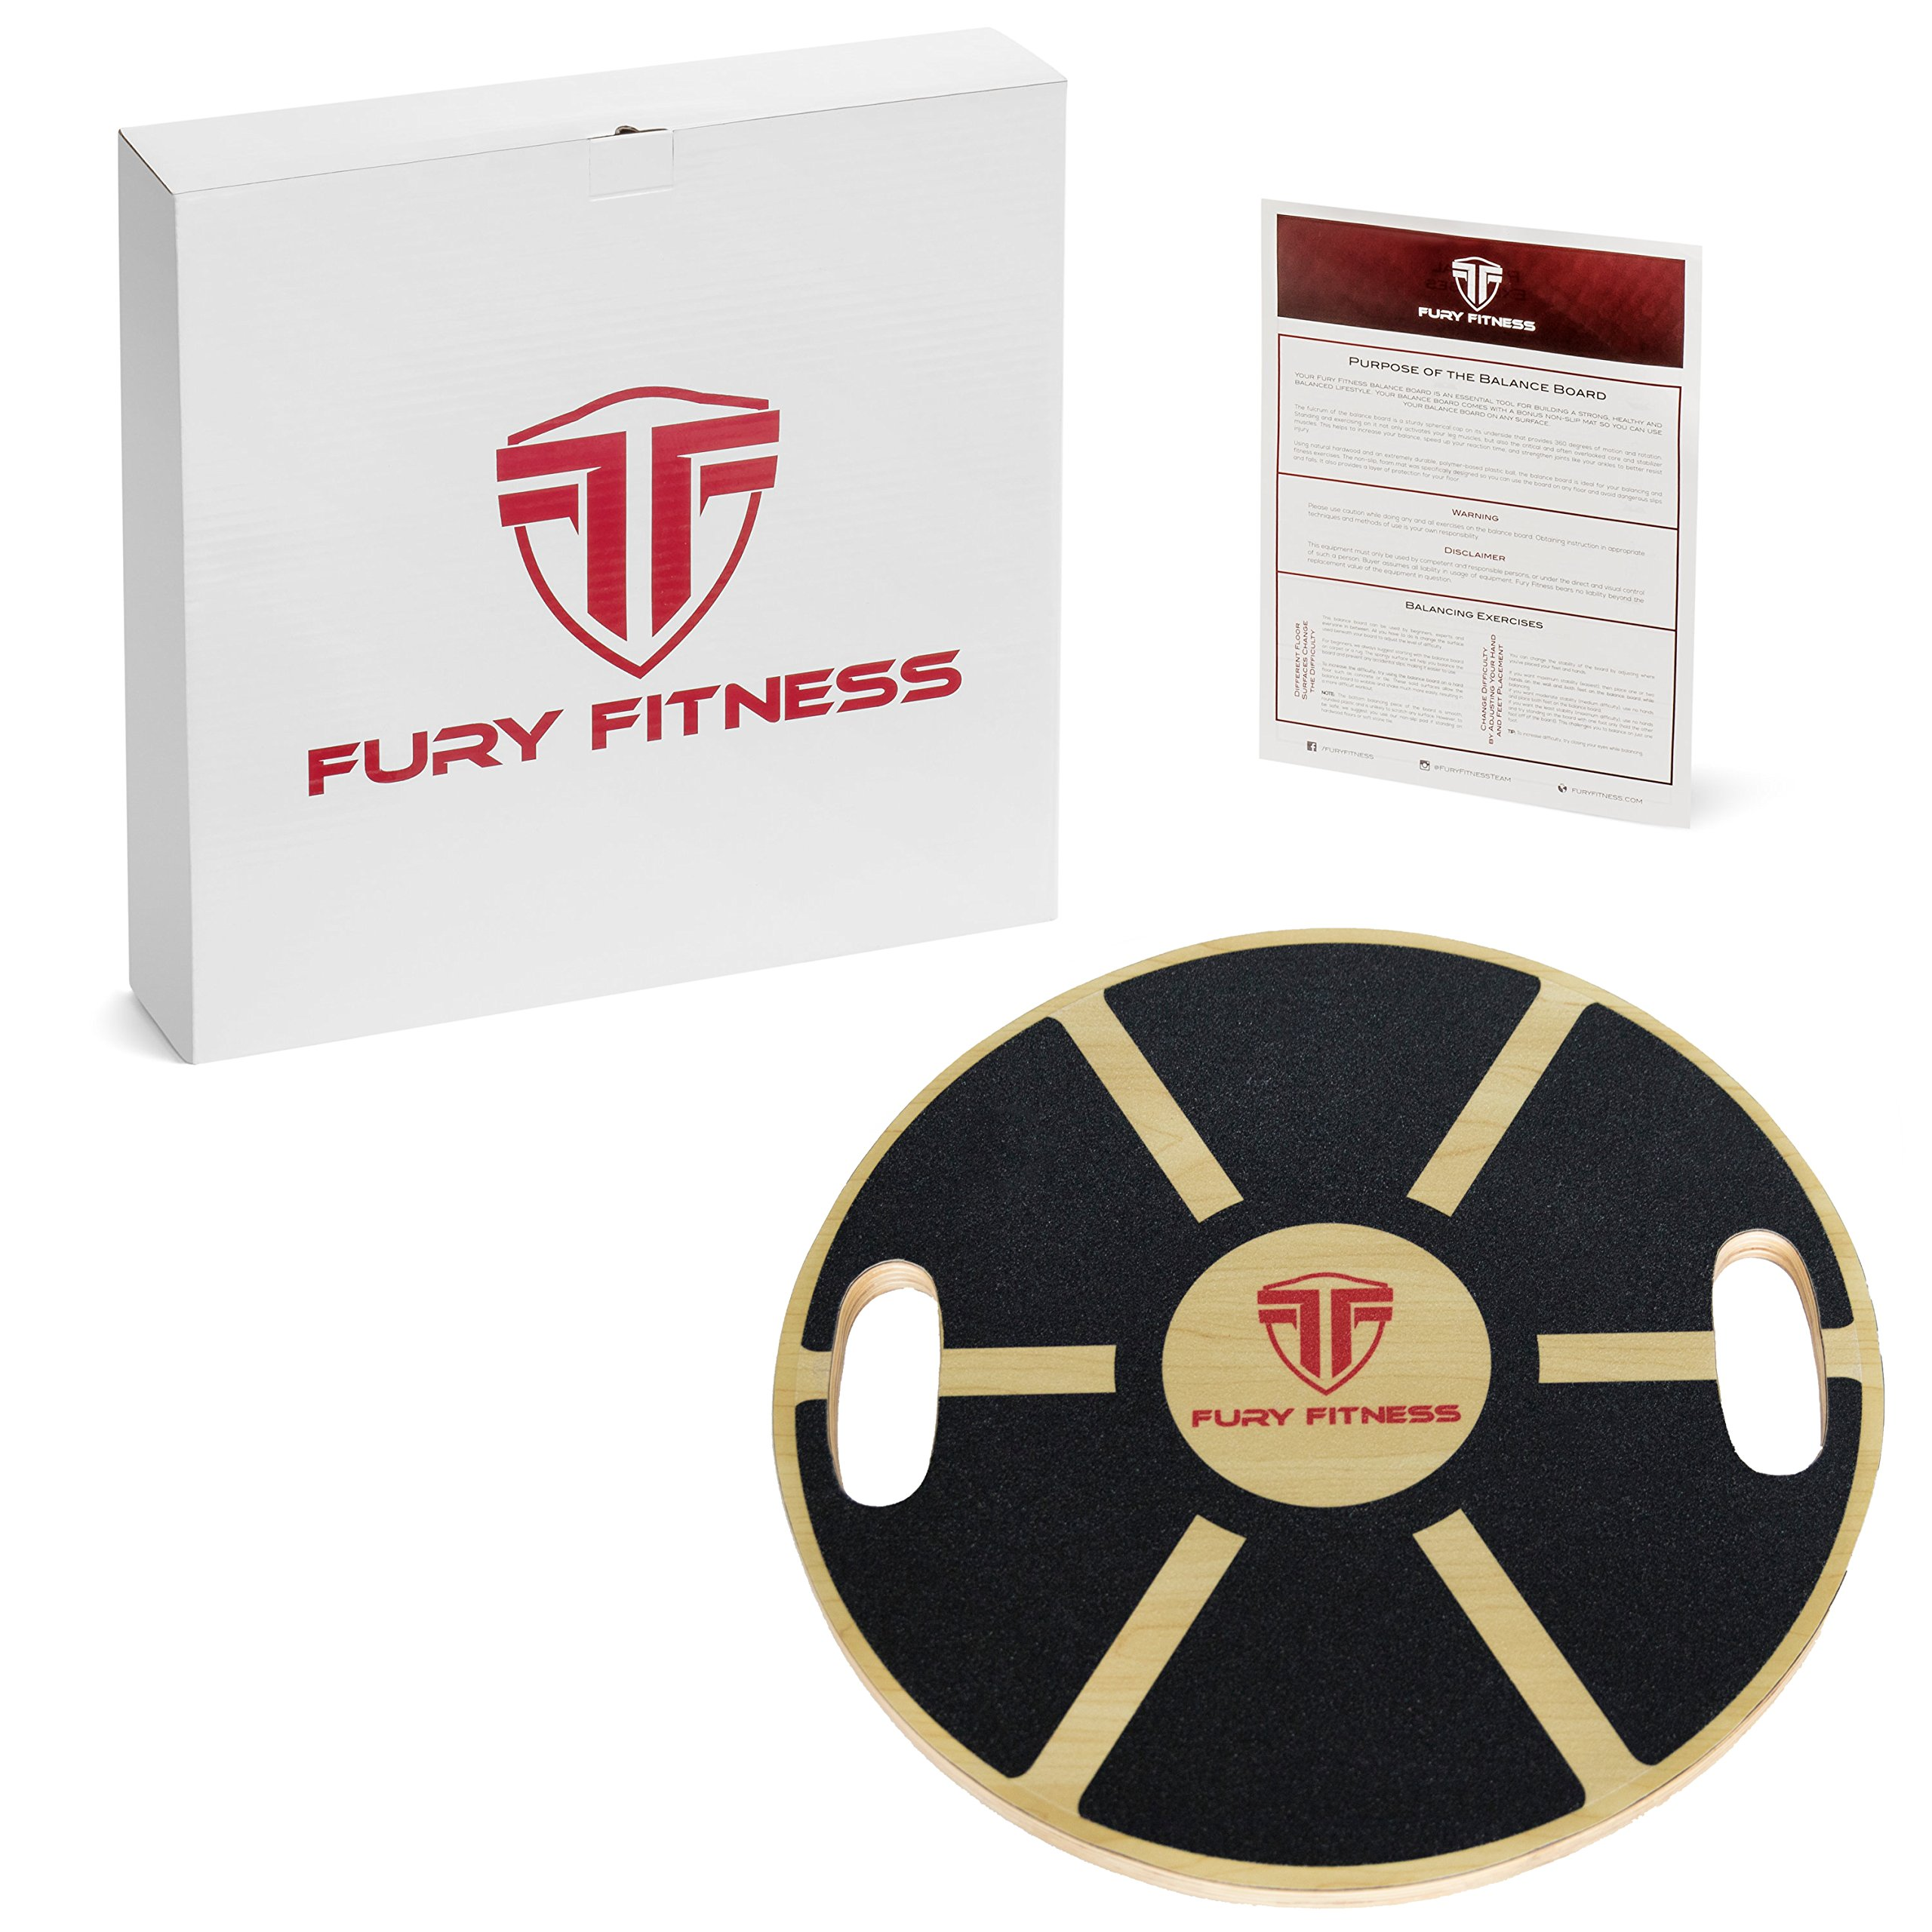 Fury Fitness Balance Board for Active Men & Women, Wobble Balancing Boards for Abs Exercise Equipment, Weight Loss, to Burn Calories, Improve Posture, Physical Therapy & Build Strong Core!